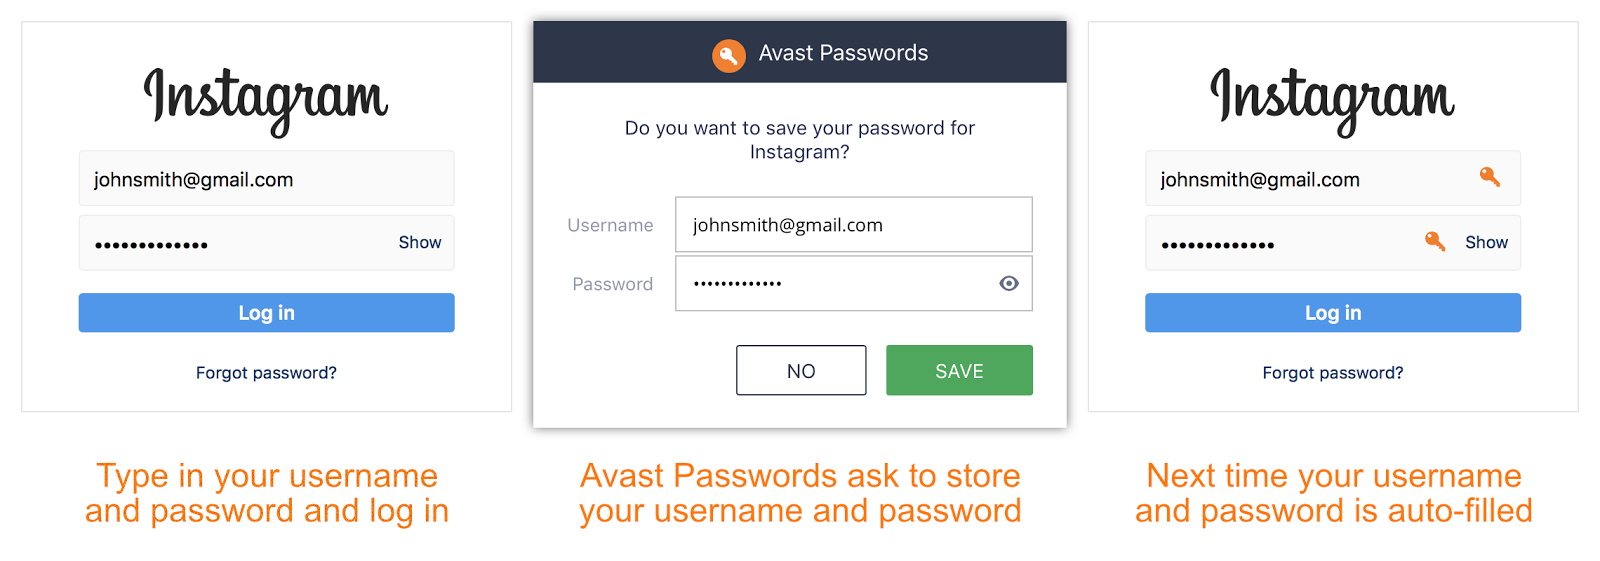 avast passwords - convenience of managing your passwords